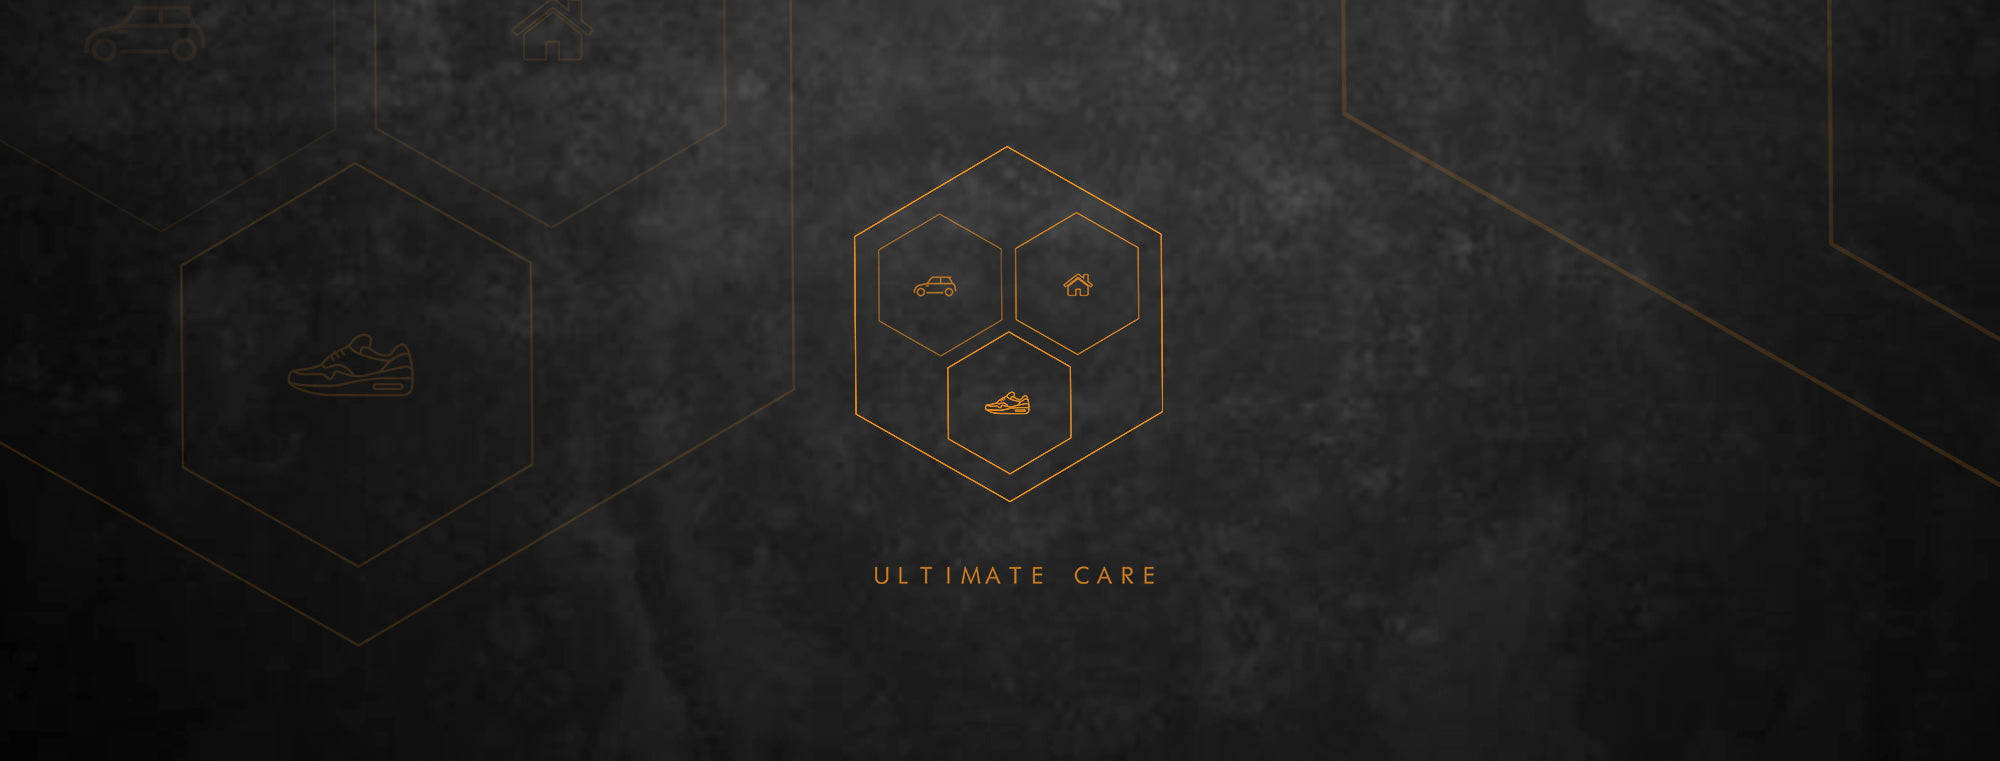 Ultimate Exclusive Car devient Ultimate Care